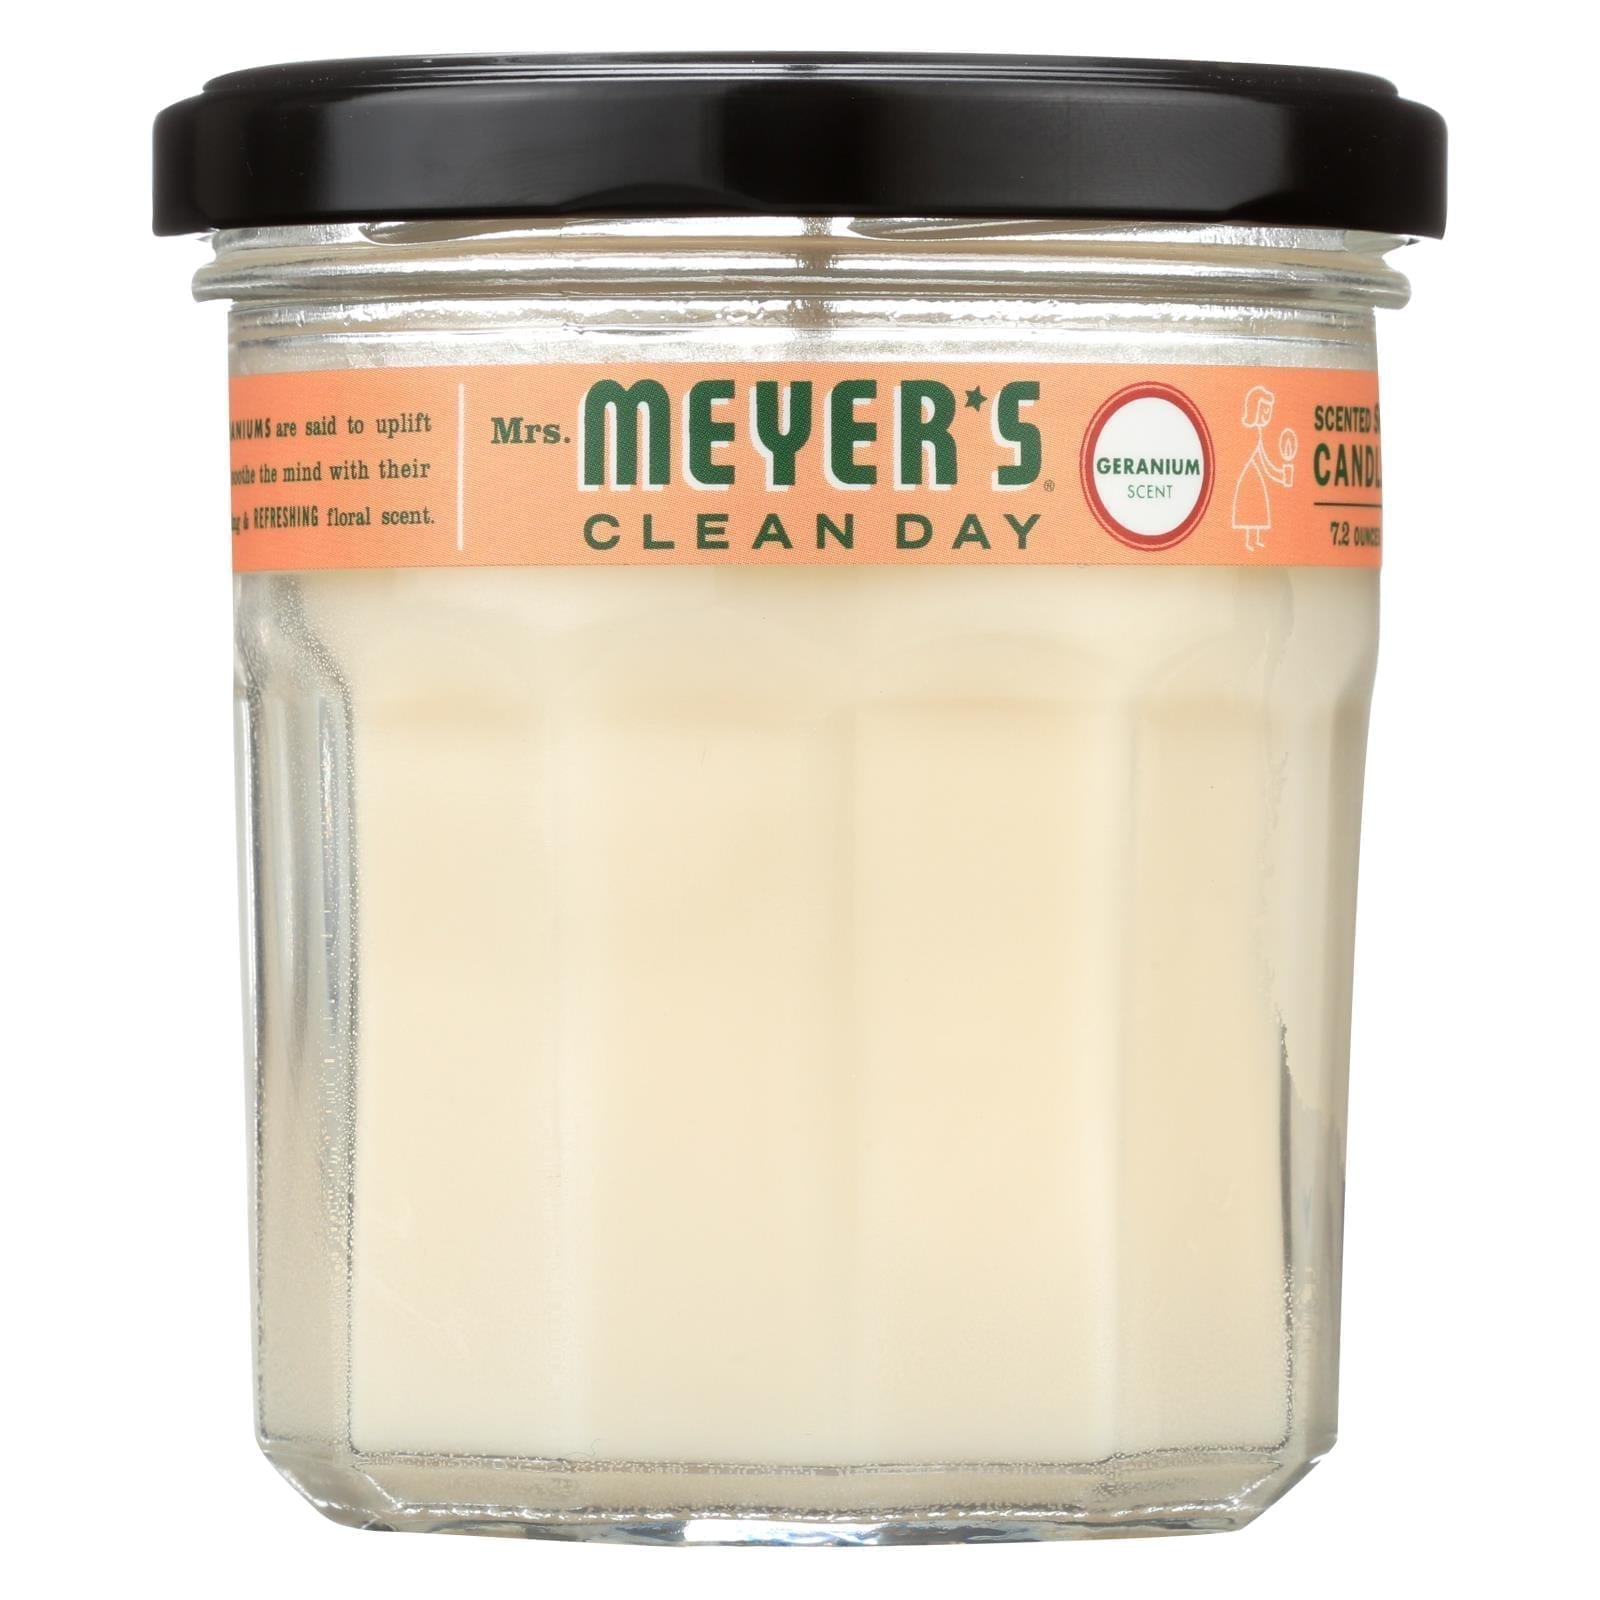 Mrs. Meyer's Soy Candles Geranium